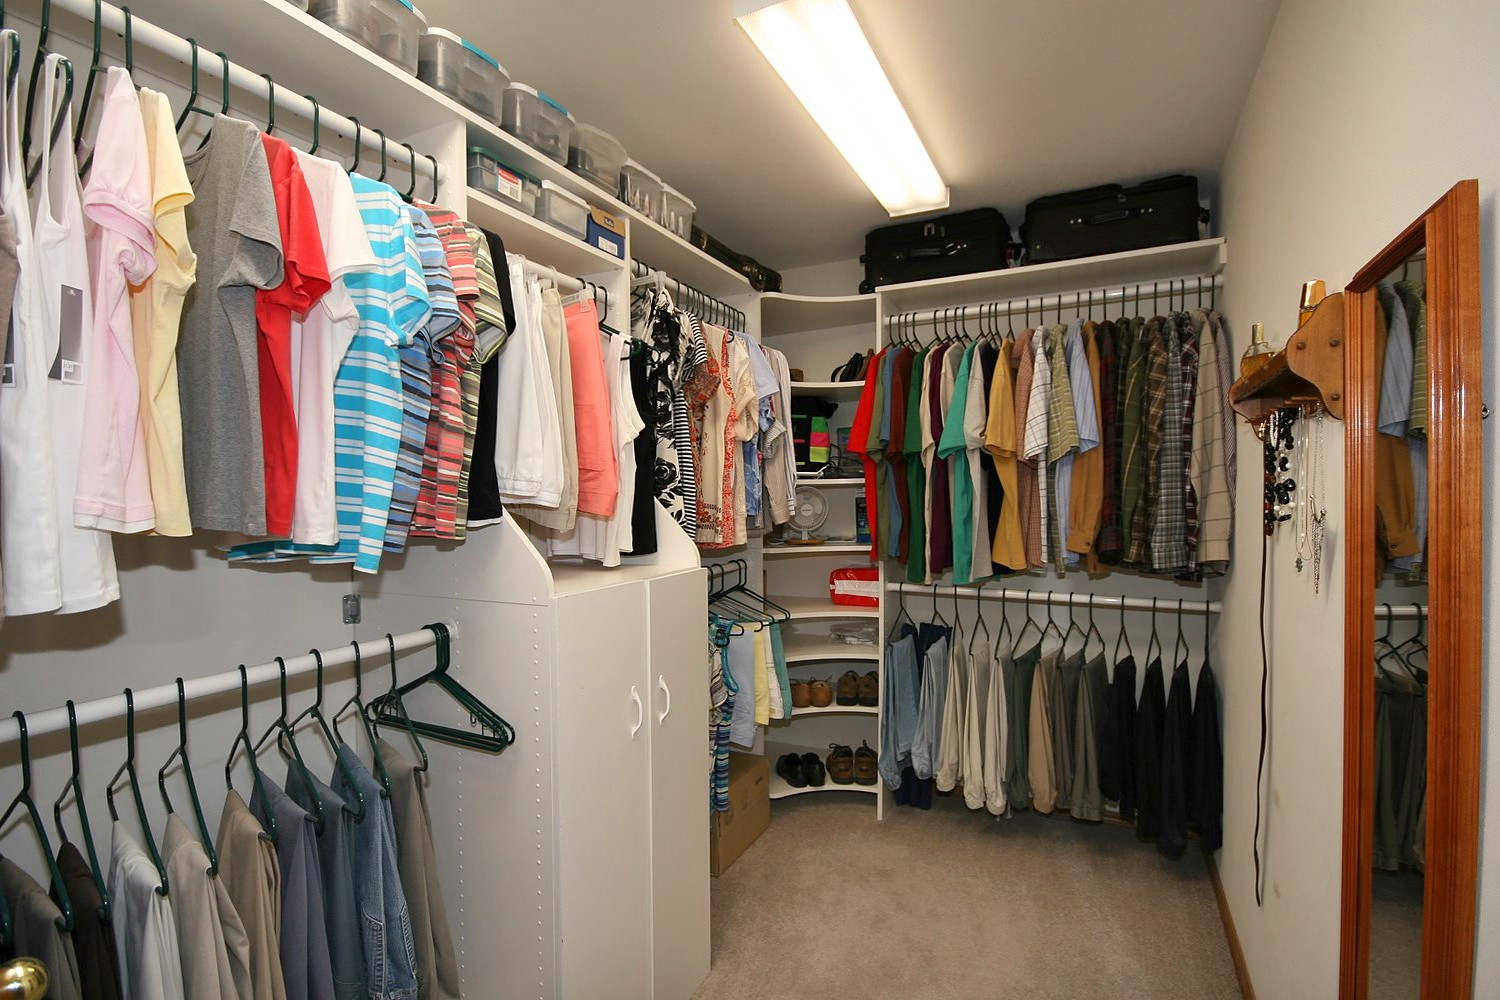 Inspiring Interior Storage Design Ideas with Diy Walk in Closet: Diy Walk In Closet | Build Closet Organizer | How To Build Your Own Closet Organizer